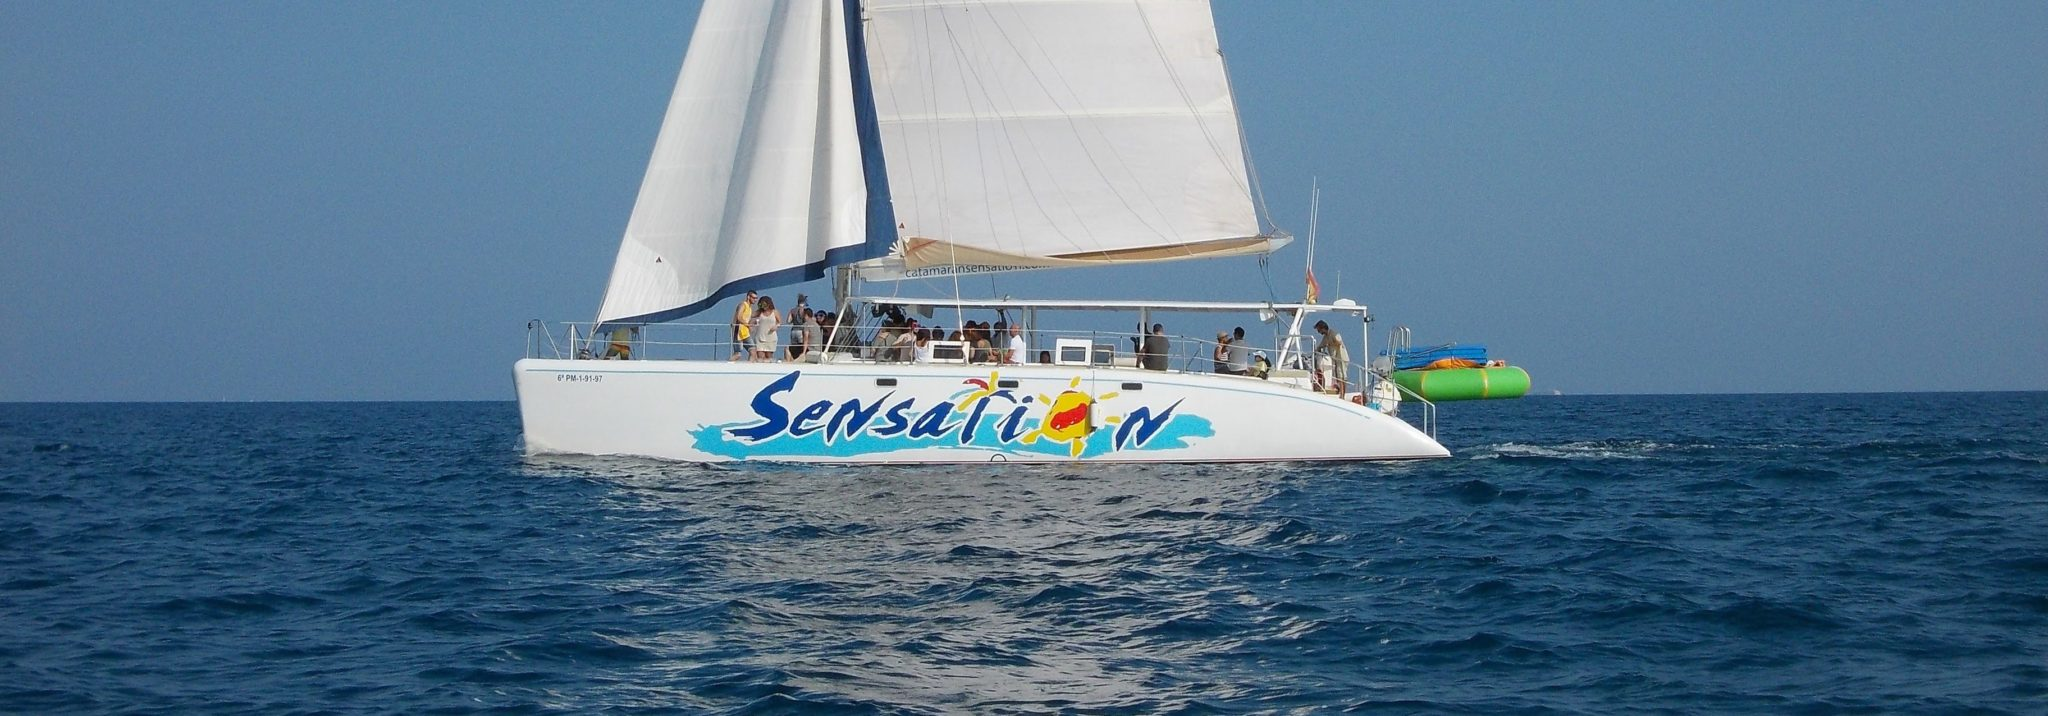 Book the sensation party boat in Barcelona